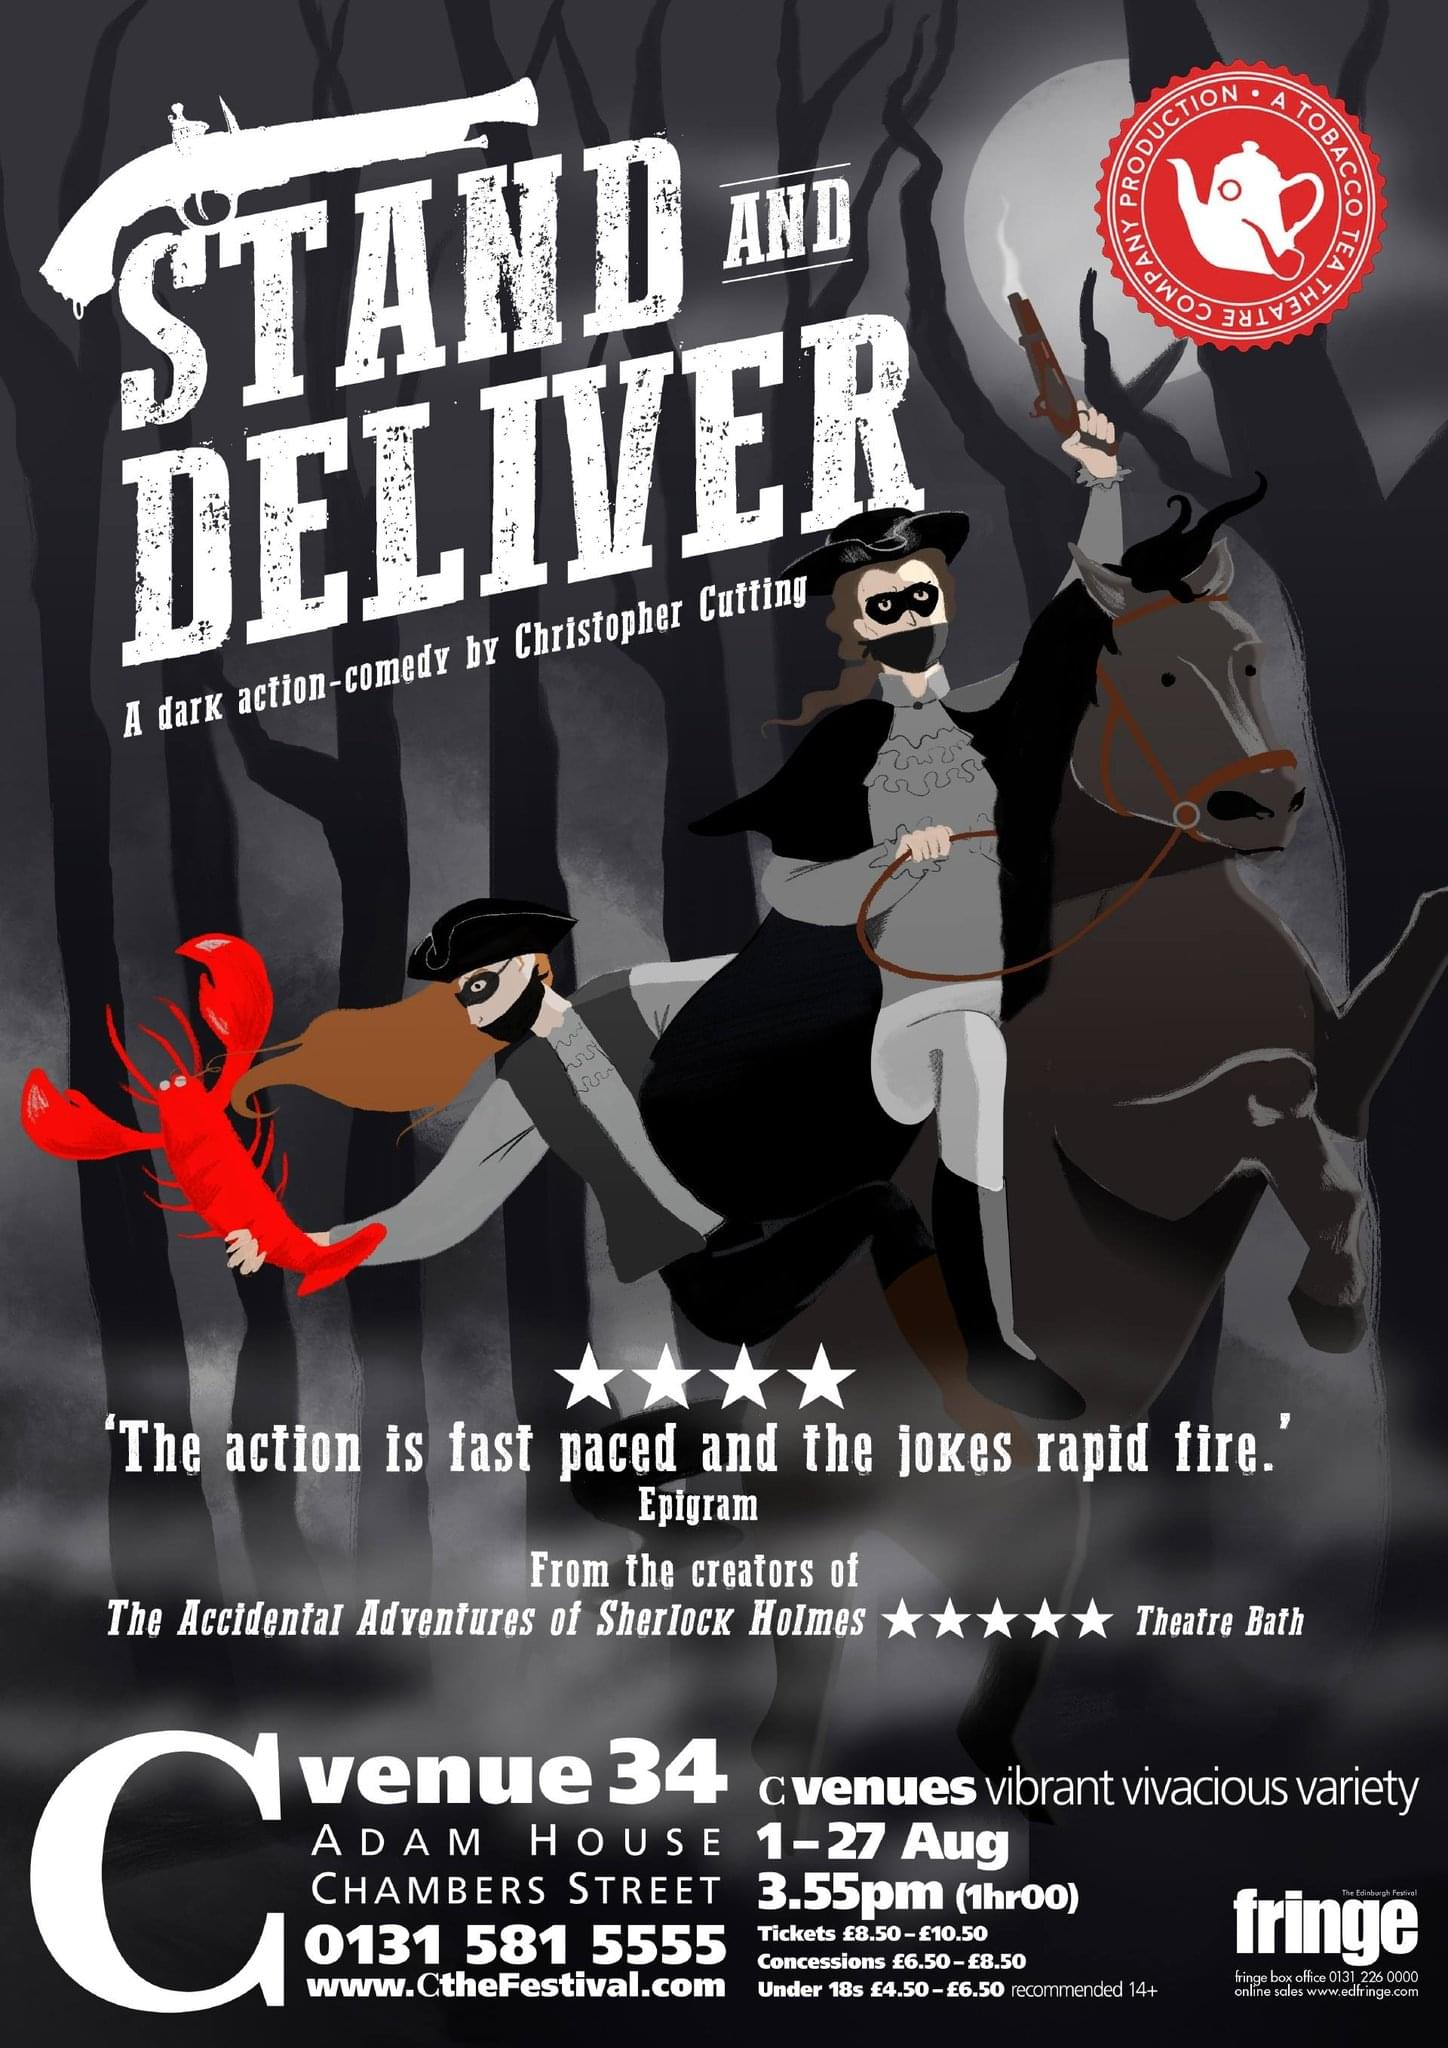 Poster for Stand and Deliver, by Christopher Cutting